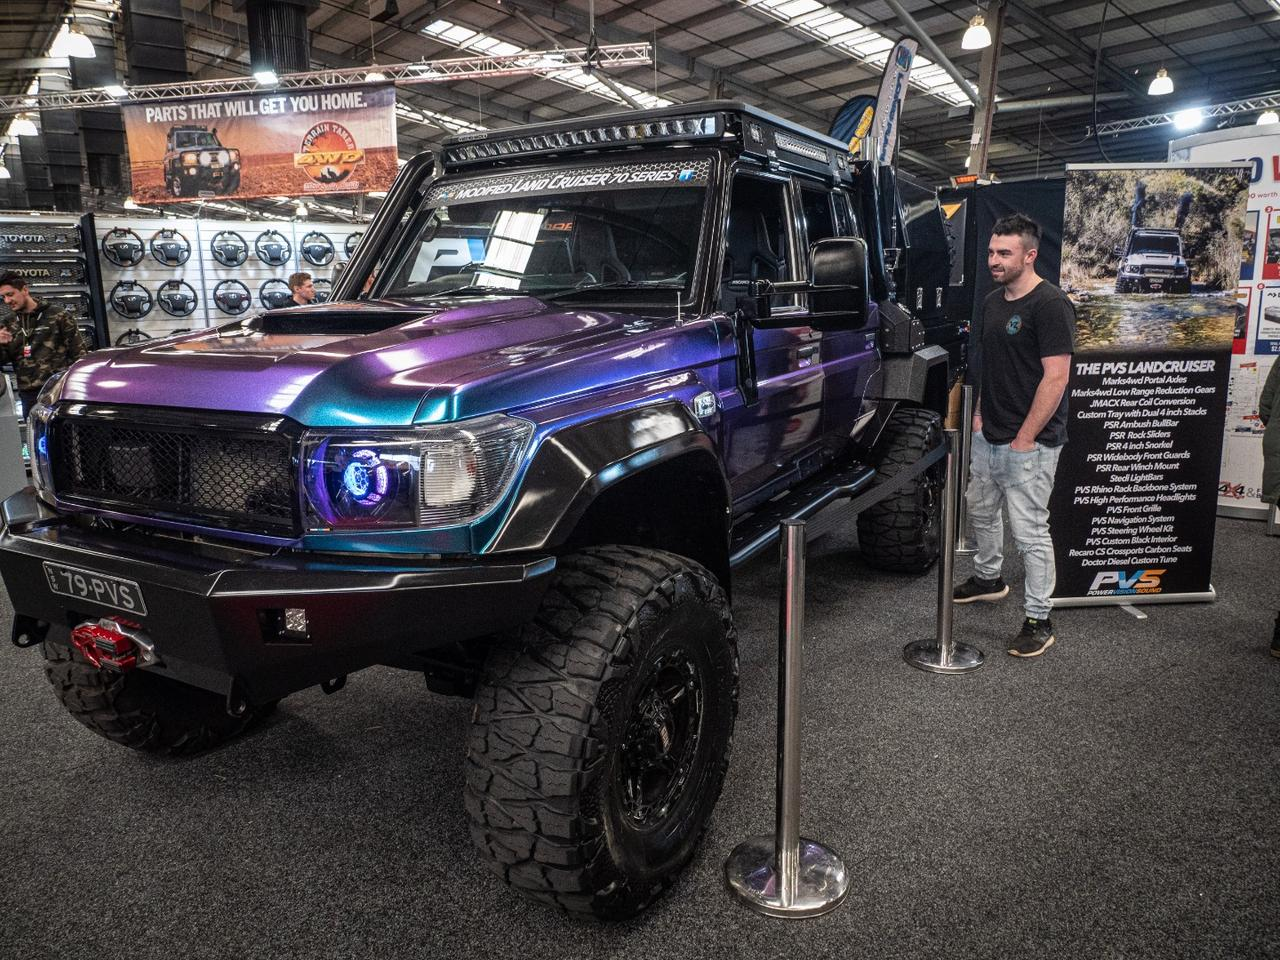 The Best Of Aussie Style Off Road Camping From The 2019 Australian 4x4 Outdoor Expo